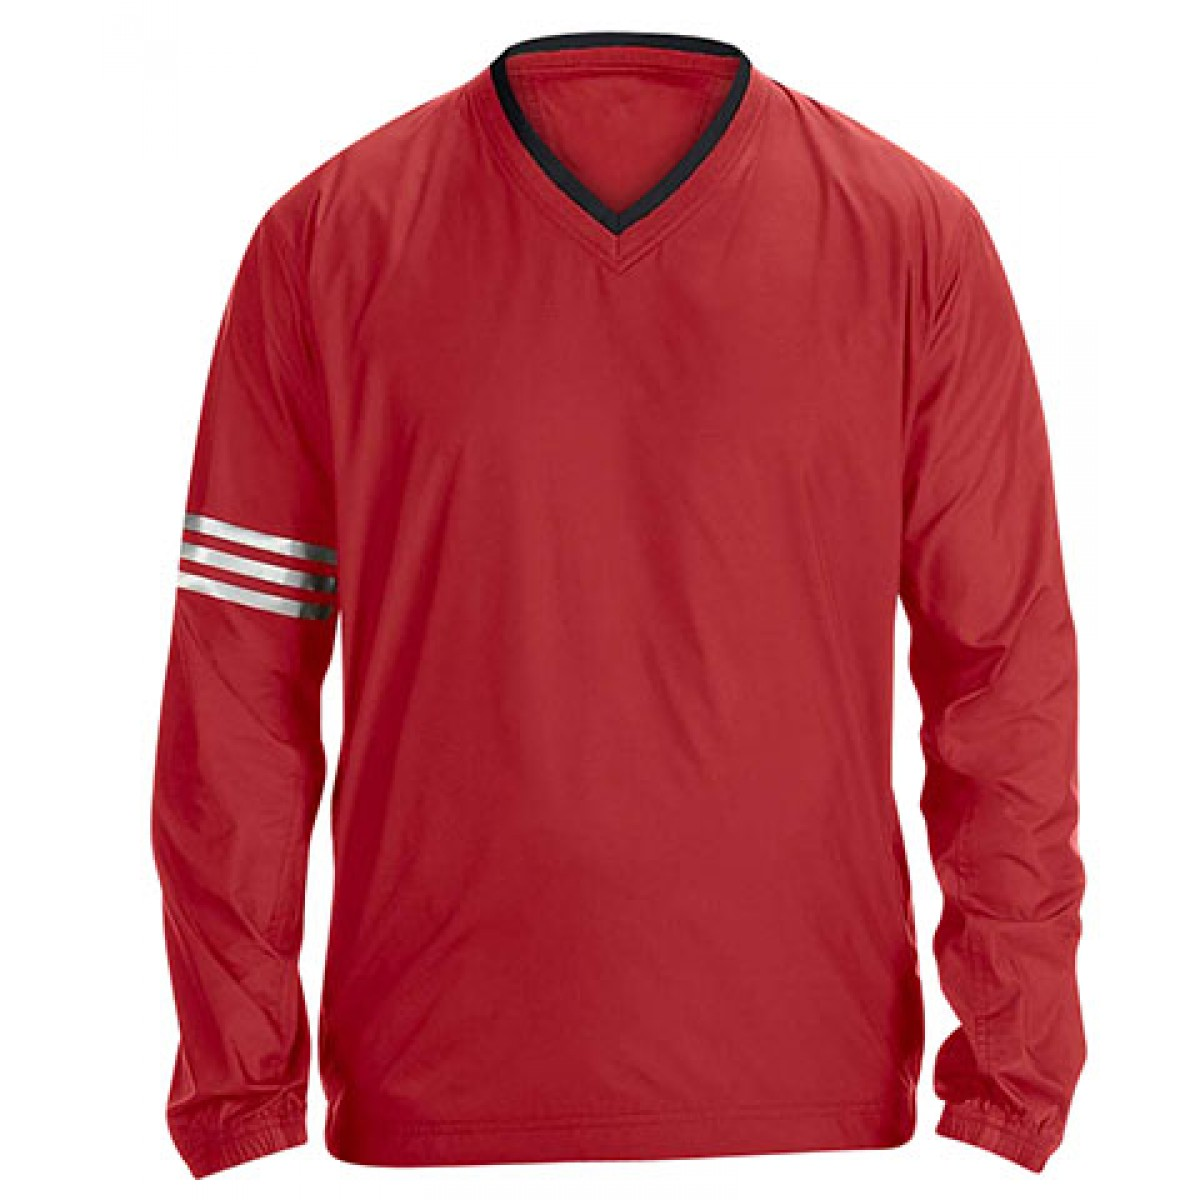 Adidas ClimaLite V-Neck Long Sleeve Wind Shirt-Red-L